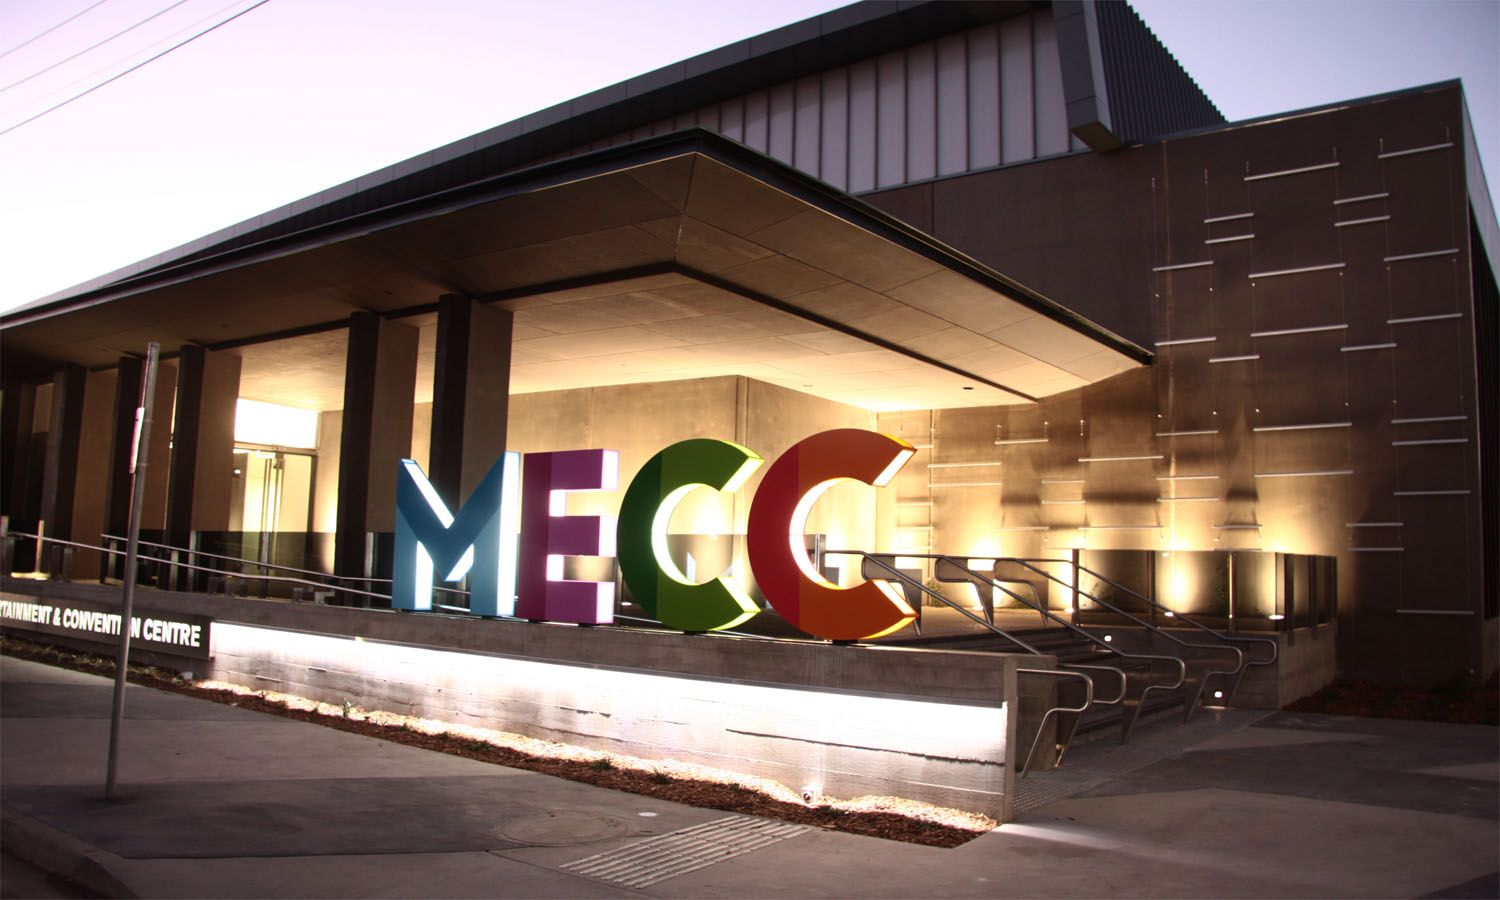 MECC. Find it at